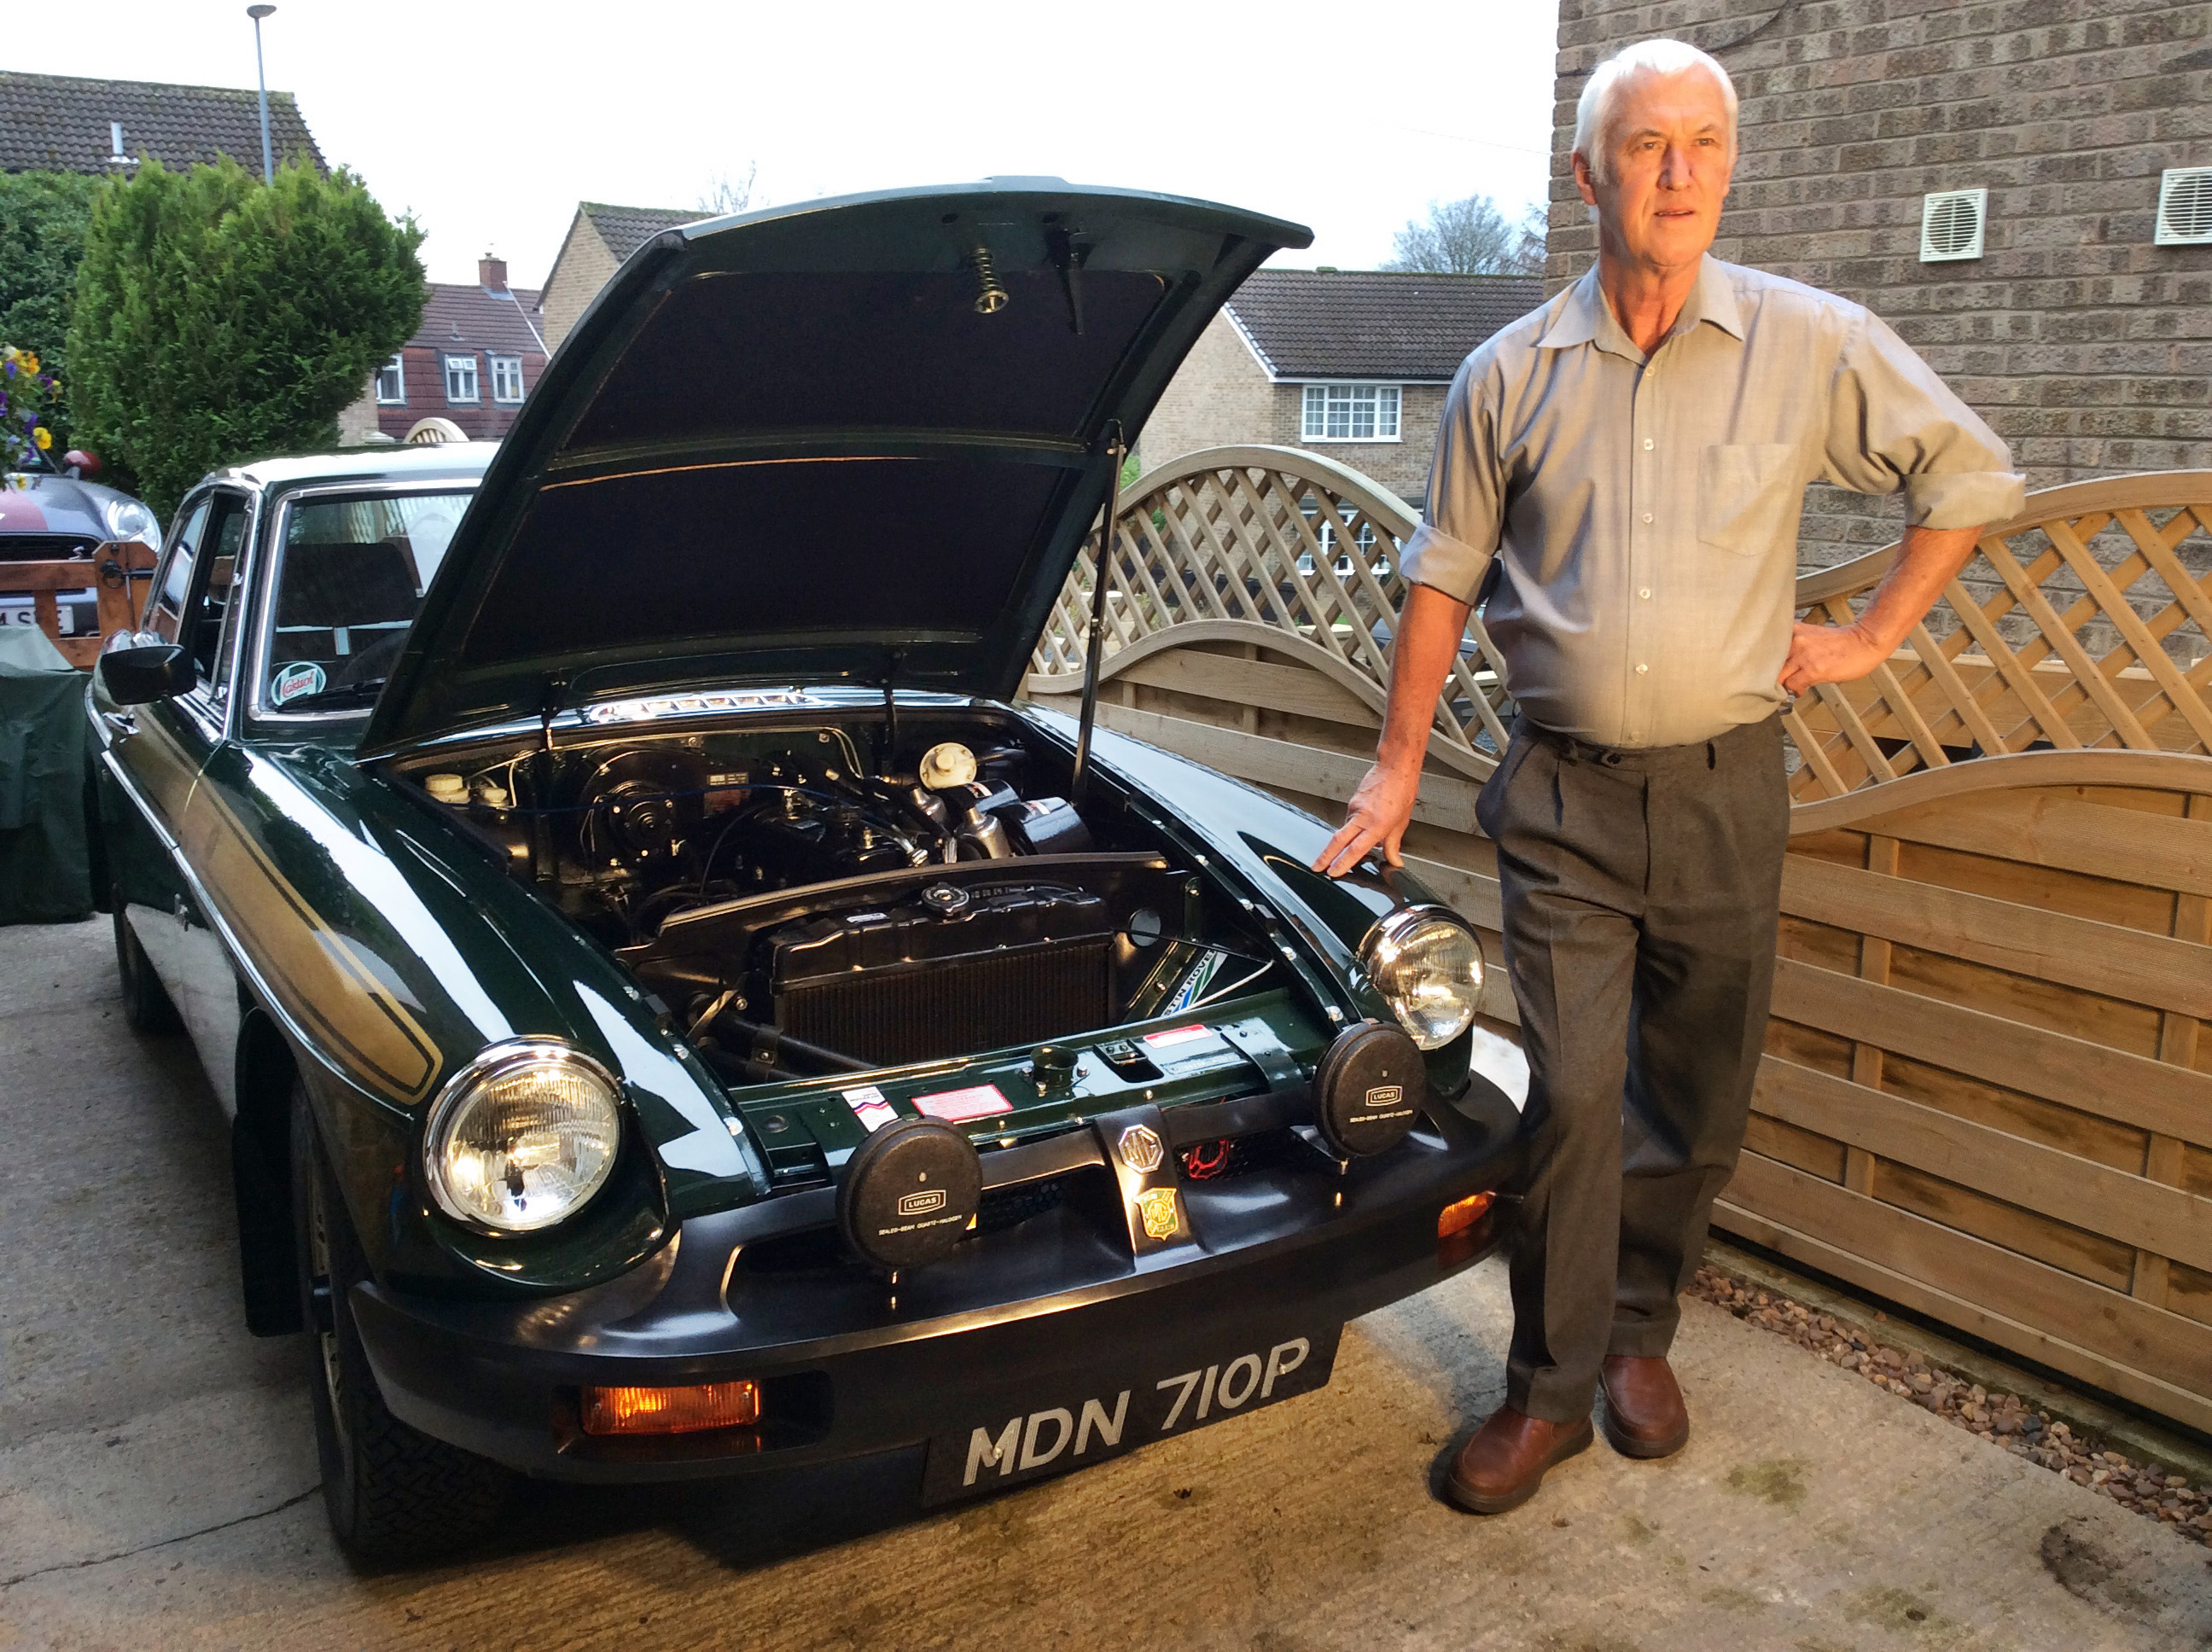 Since repurchasing it, he's spent £3,500 on restorations